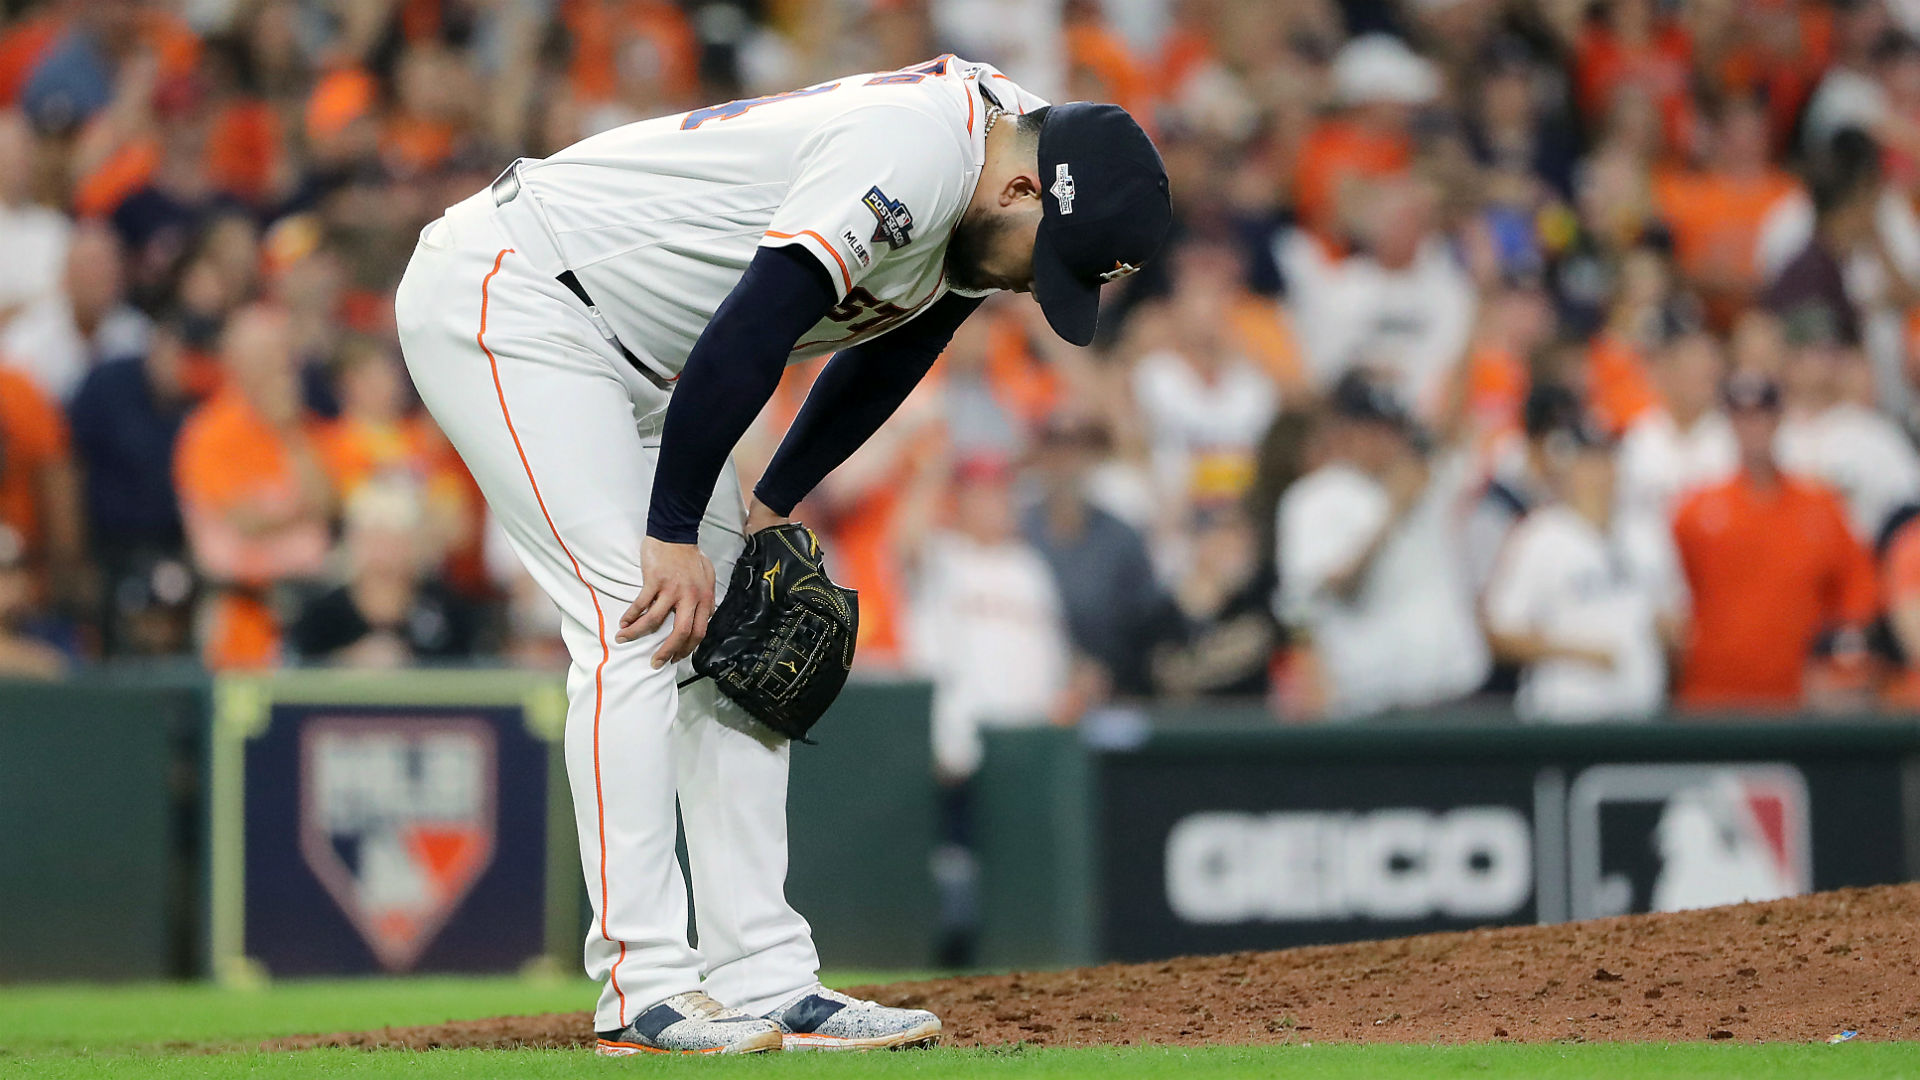 Astros dispute story that team executive taunted female reporters about Roberto Osuna